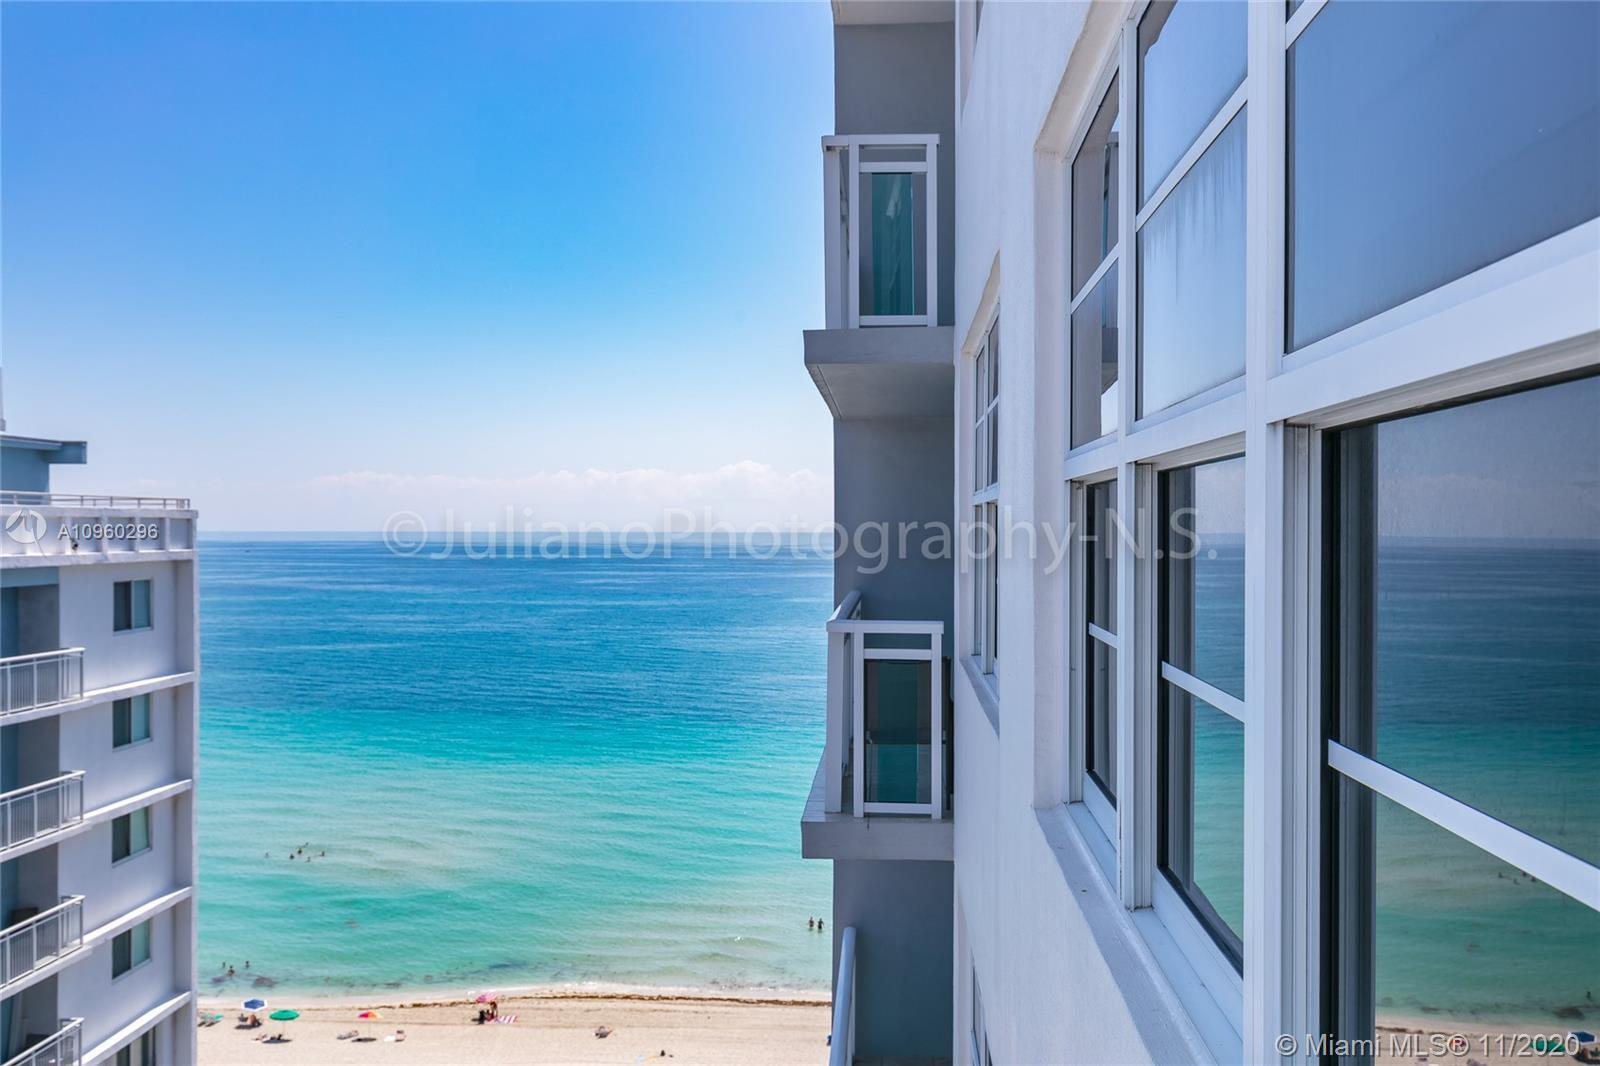 Enjoy beachfront living with this unique one-bedroom unit located in Mid Miami Beach. Travertine til